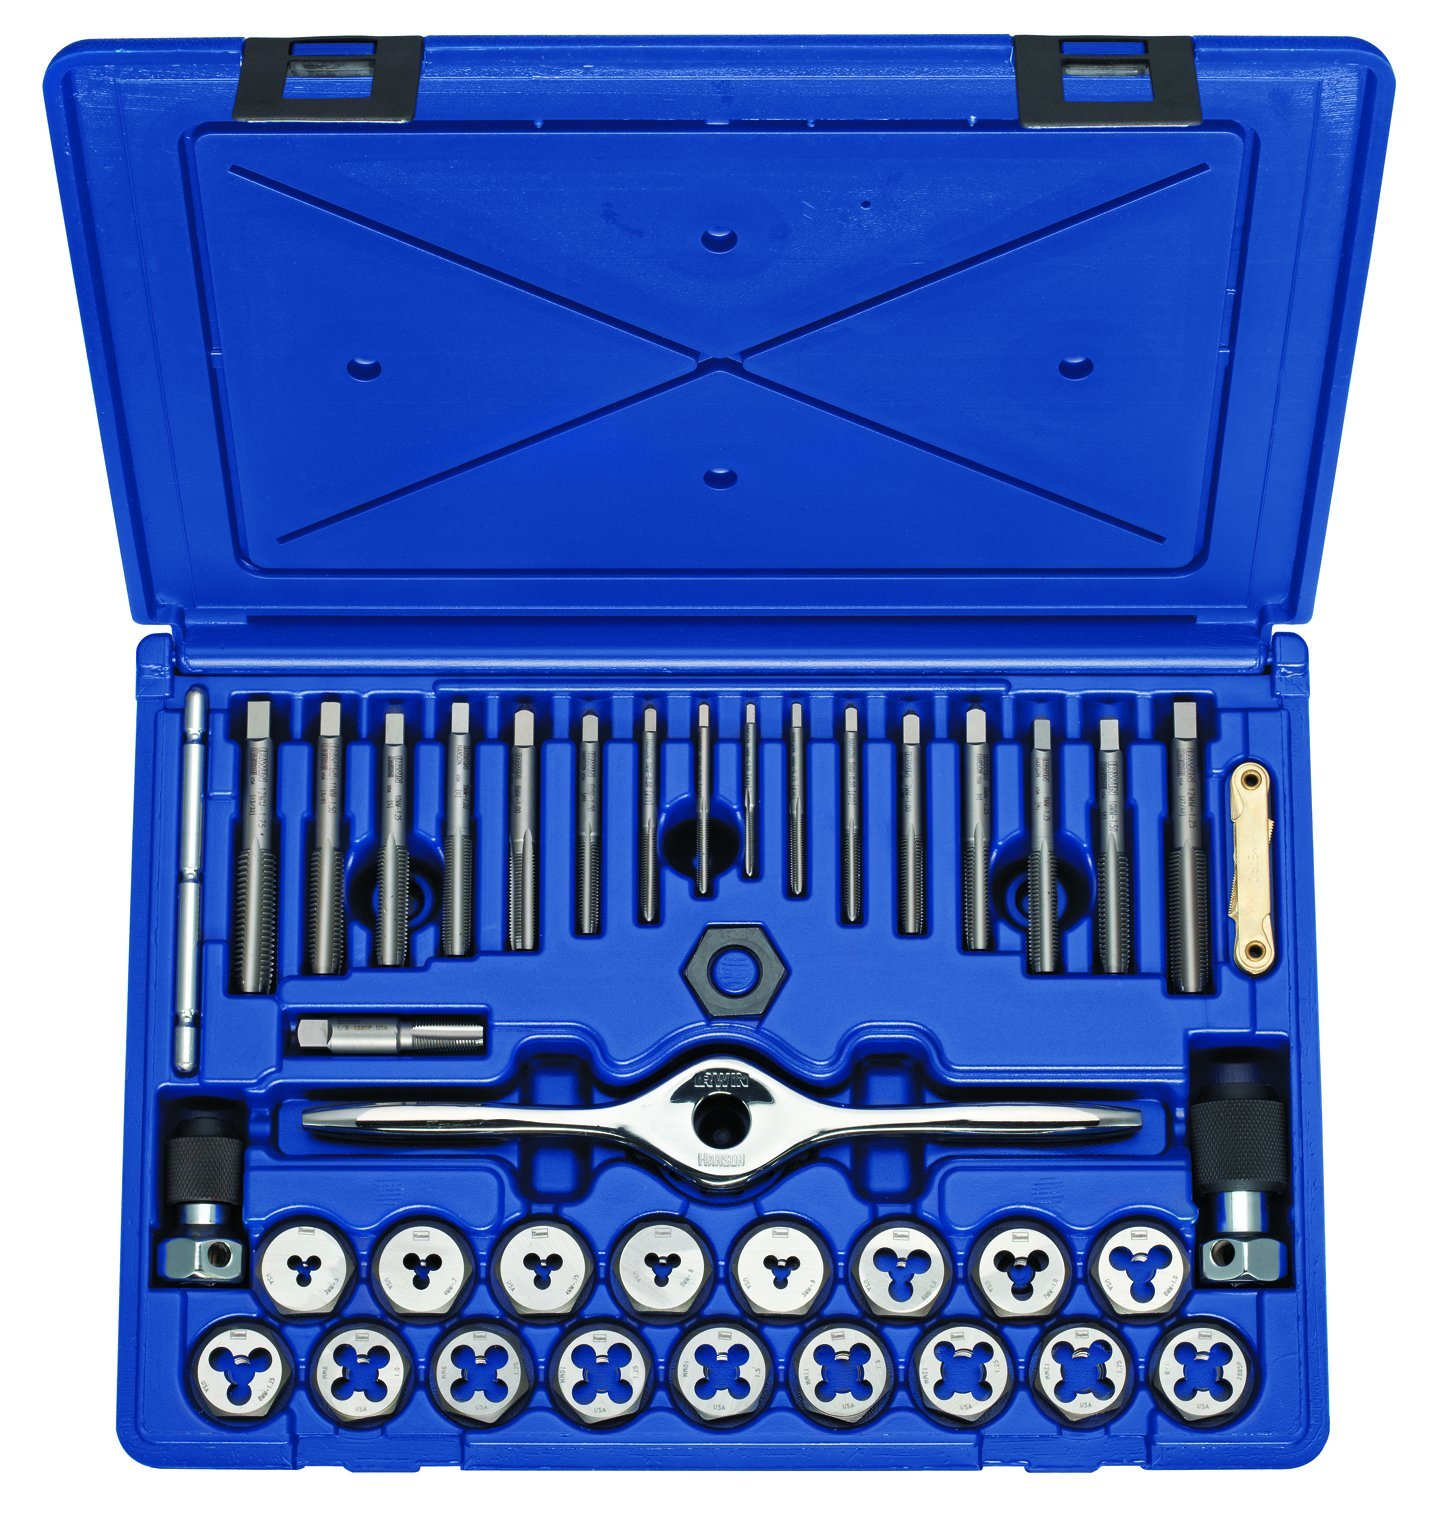 Irwin Tools 1835092 Performance Threading System Plug Tap and Die Set -Metric, 40-Piece by Irwin Tools